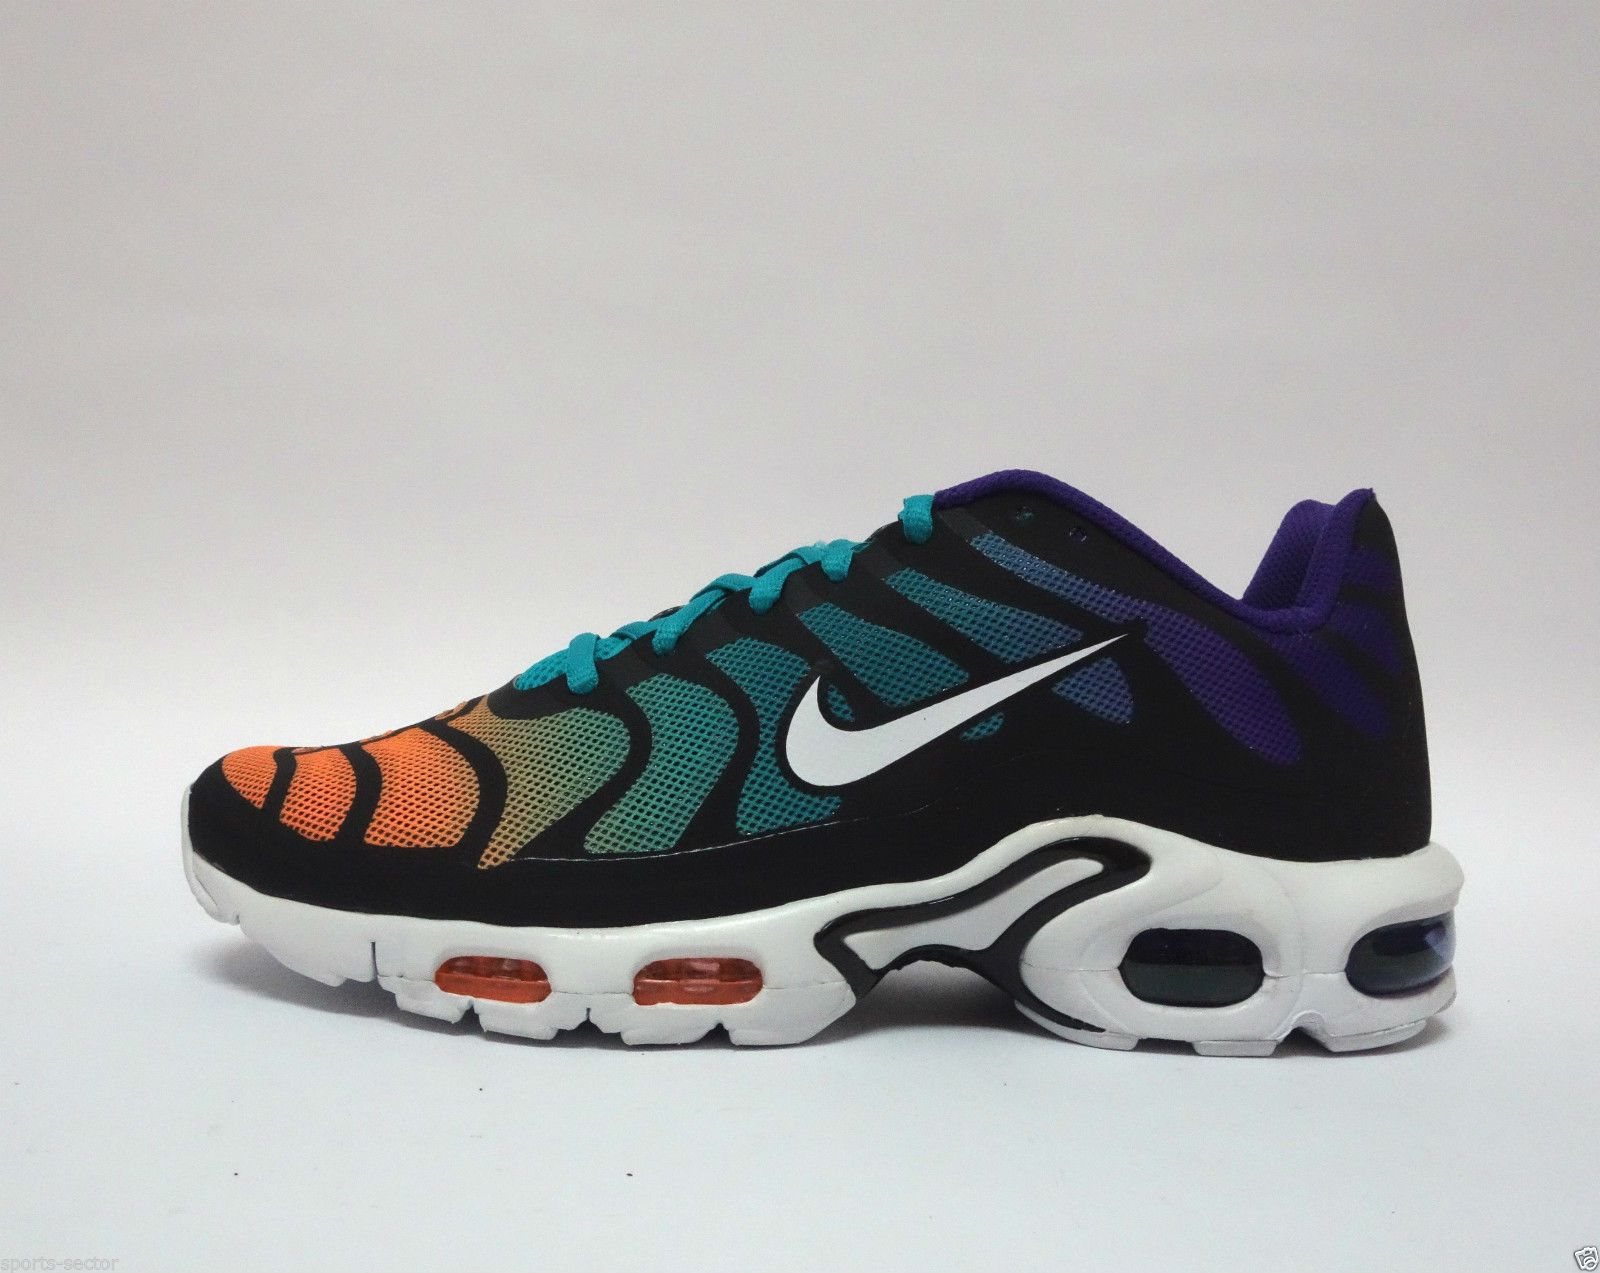 buy popular 5b93c 83a37 Nike Air Max Plus Hyperfuse TN1 Tuned Mens Trainers Shoes Turbo Green White    eBay